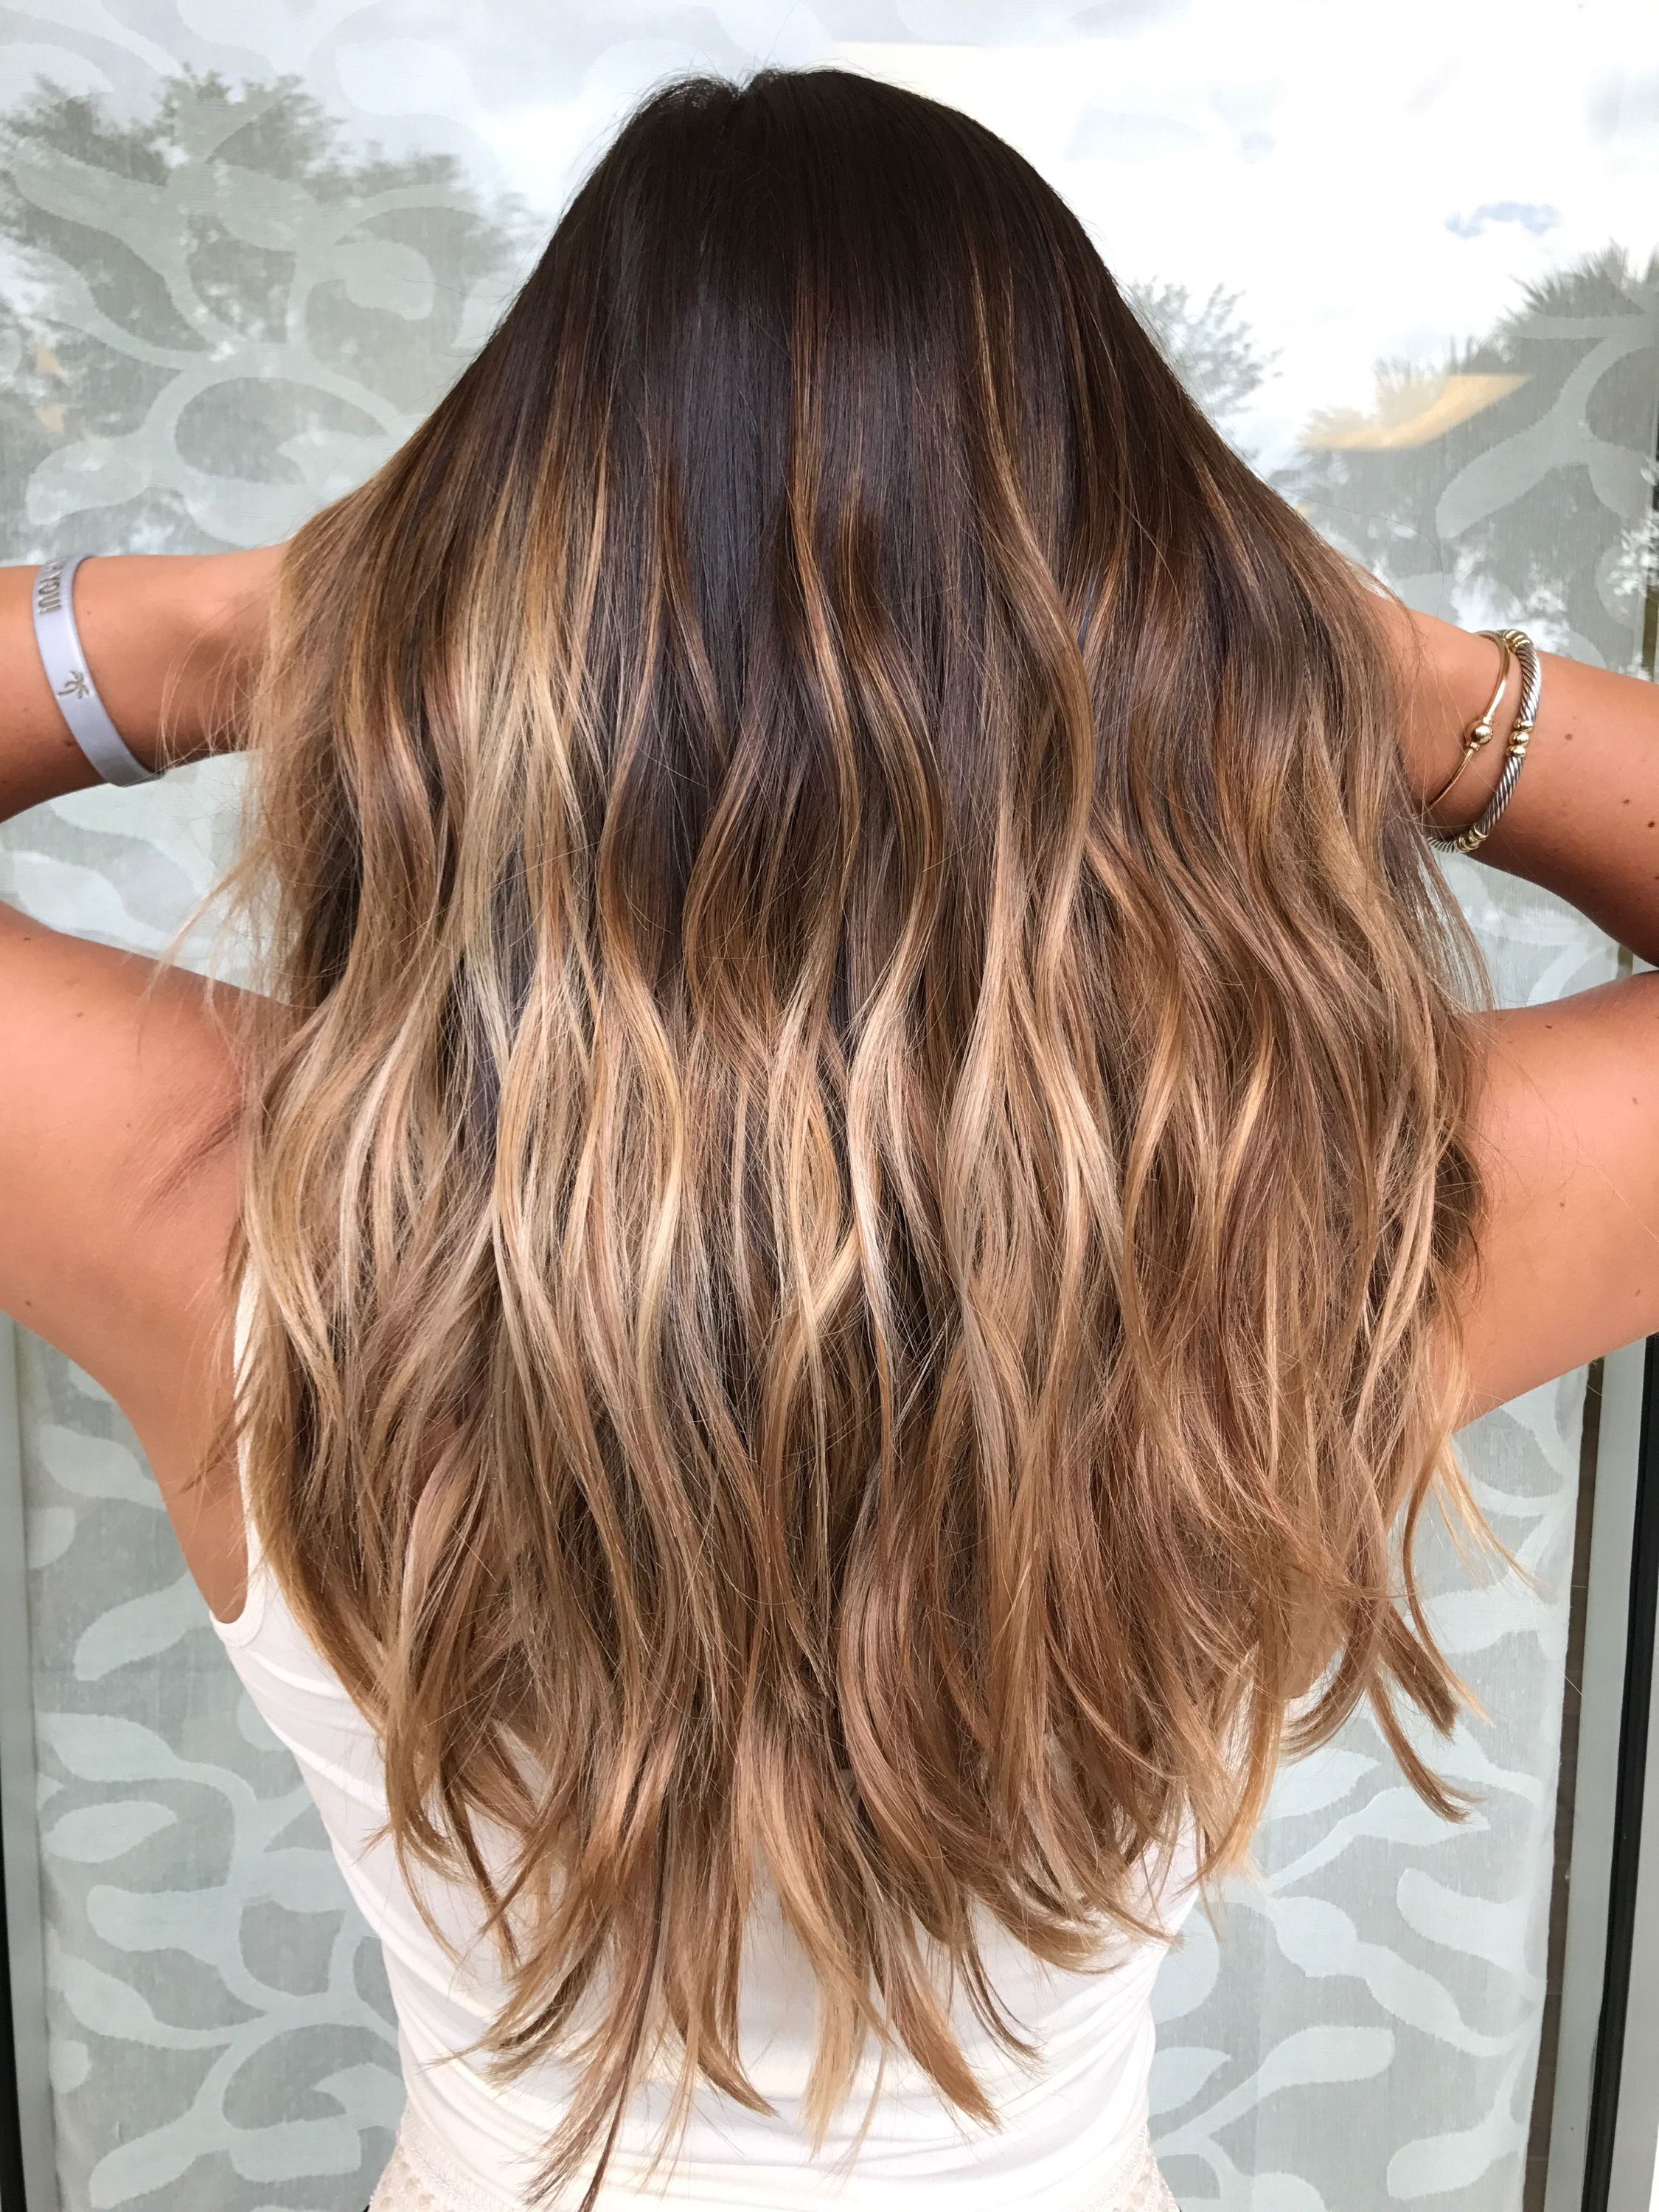 Honey Golden Balayage Hair In 2019 Cheveux Cheveux